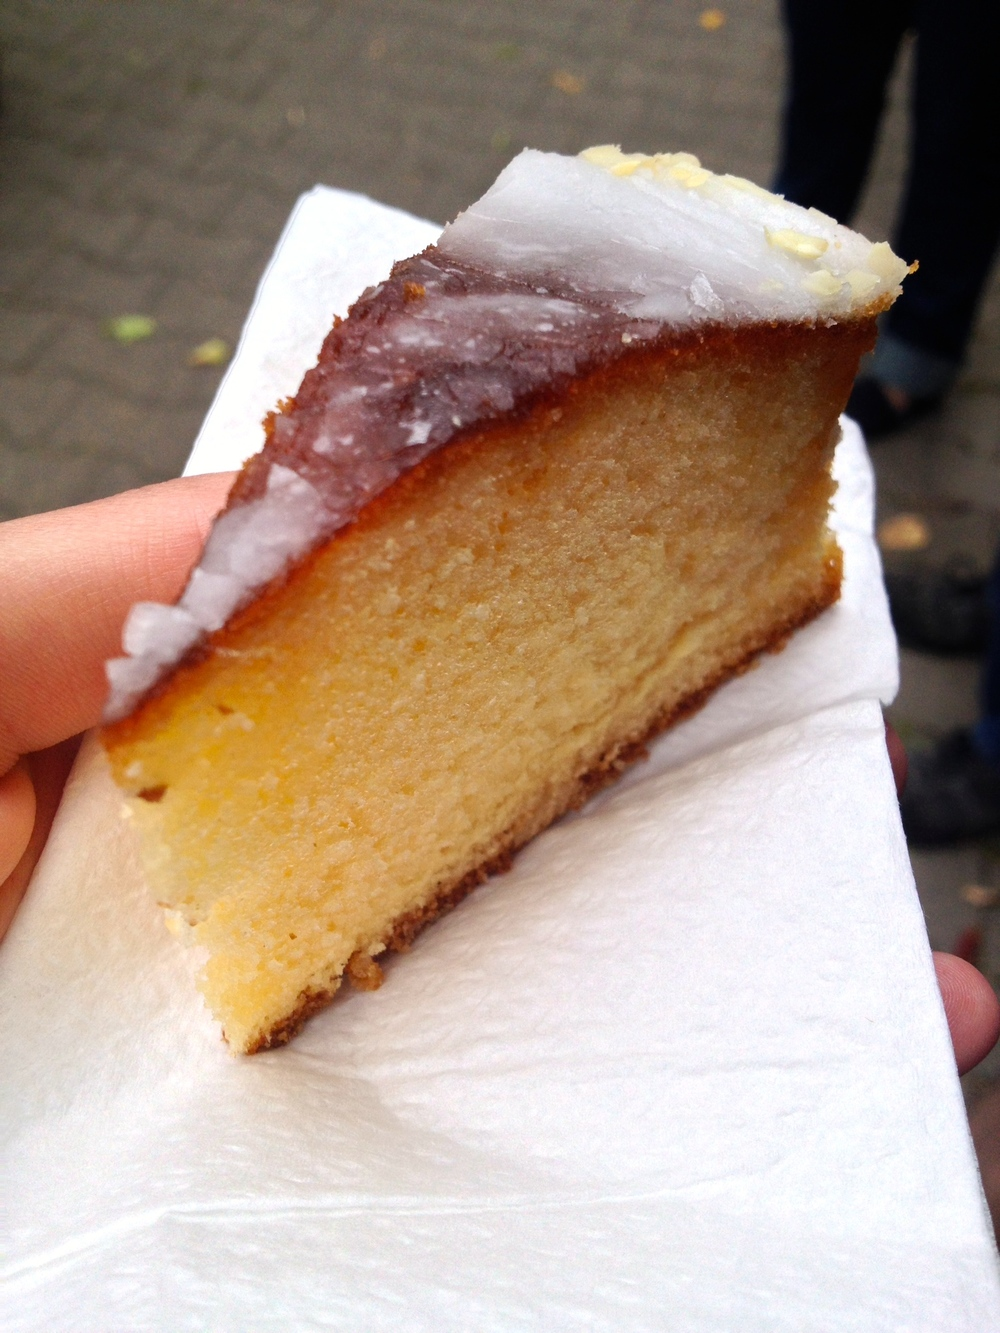 Sicilian lemon cake at  Backerei Kronberger